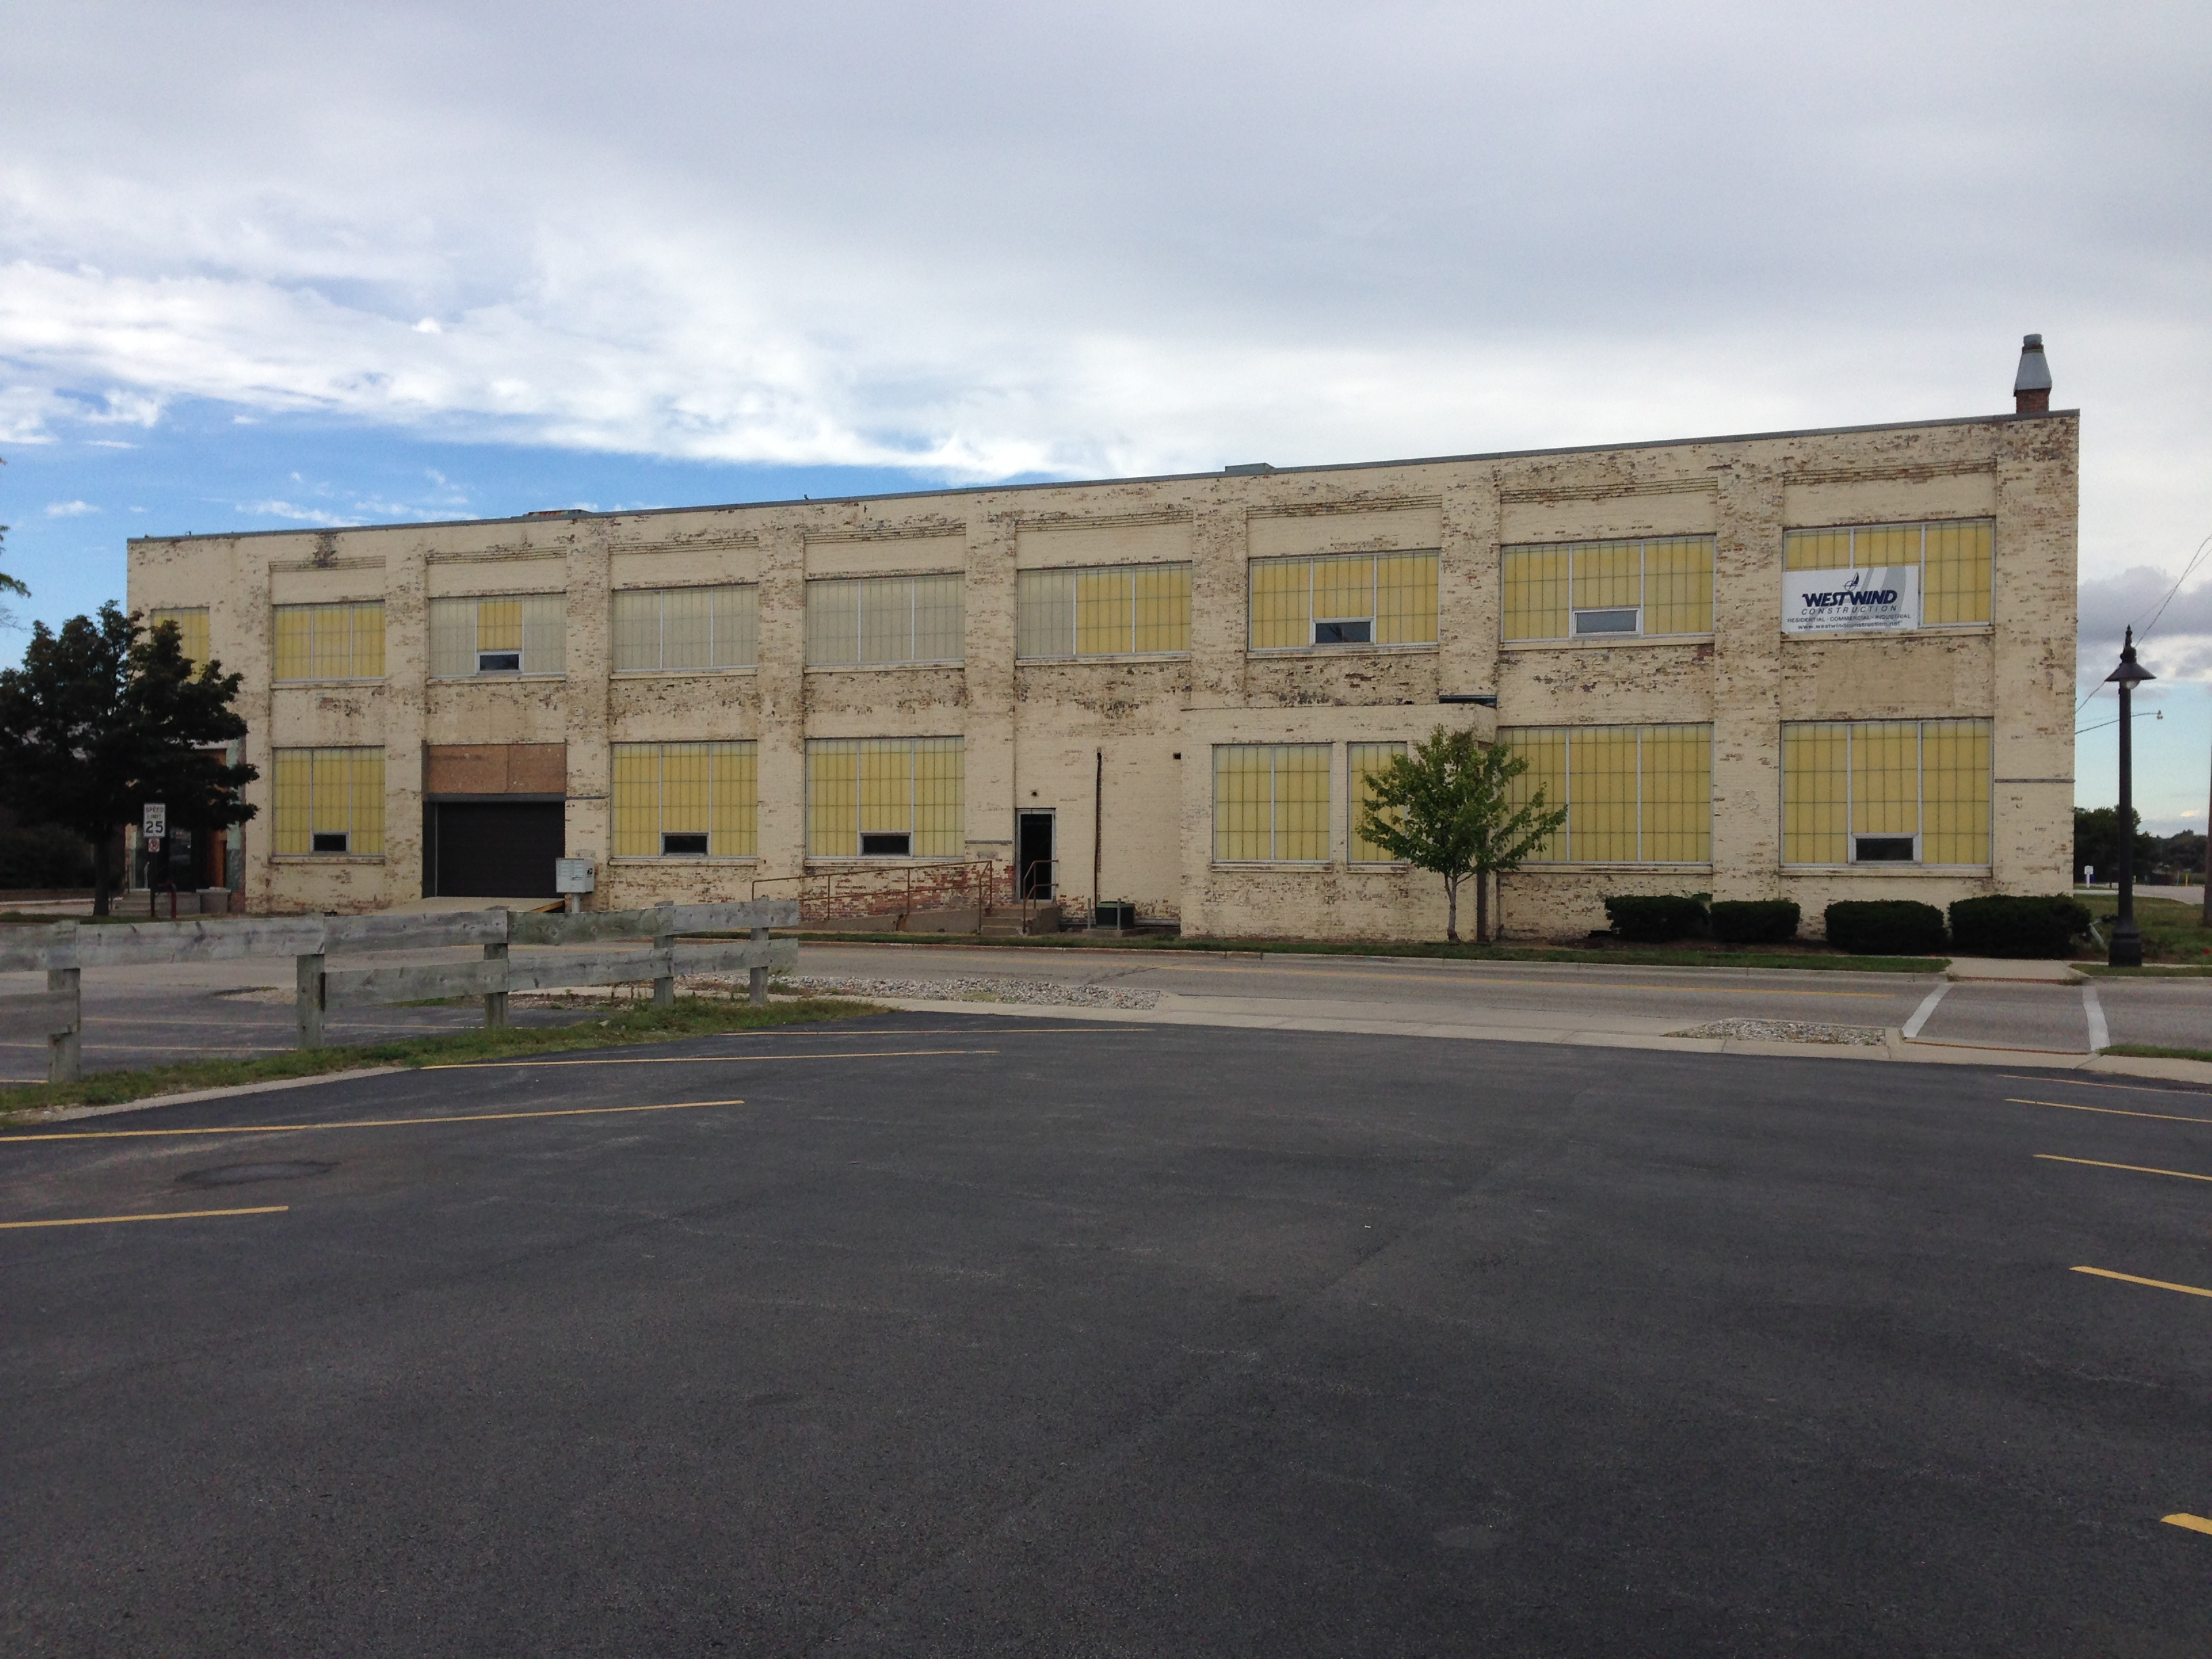 LEI retained for Brownfield redevelopment work at two Grand Haven properties